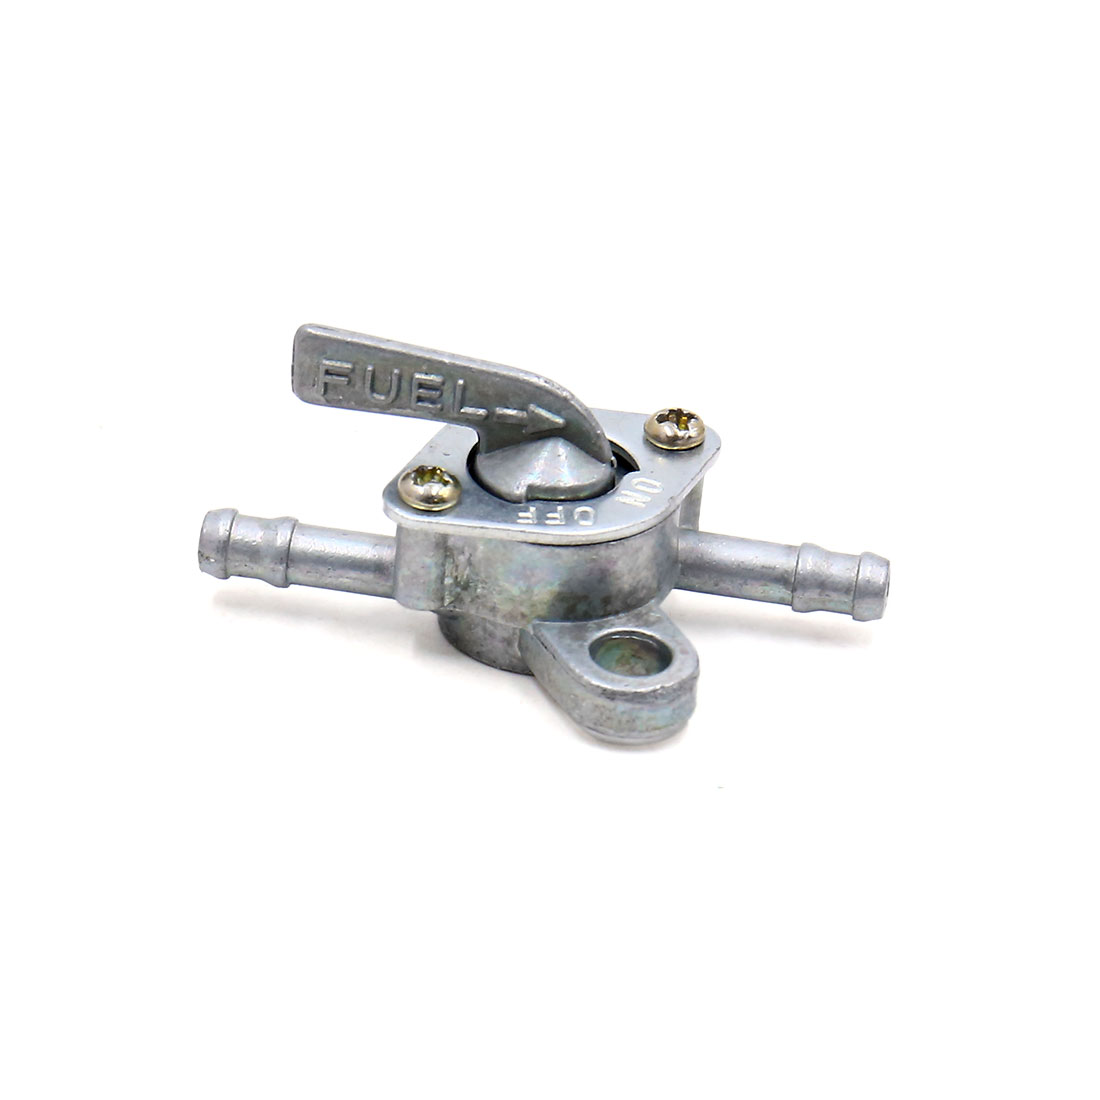 Silver Tone Universal Fuel Filter W Oil Tank Switch For Atv Scooter Filters Motorcycle